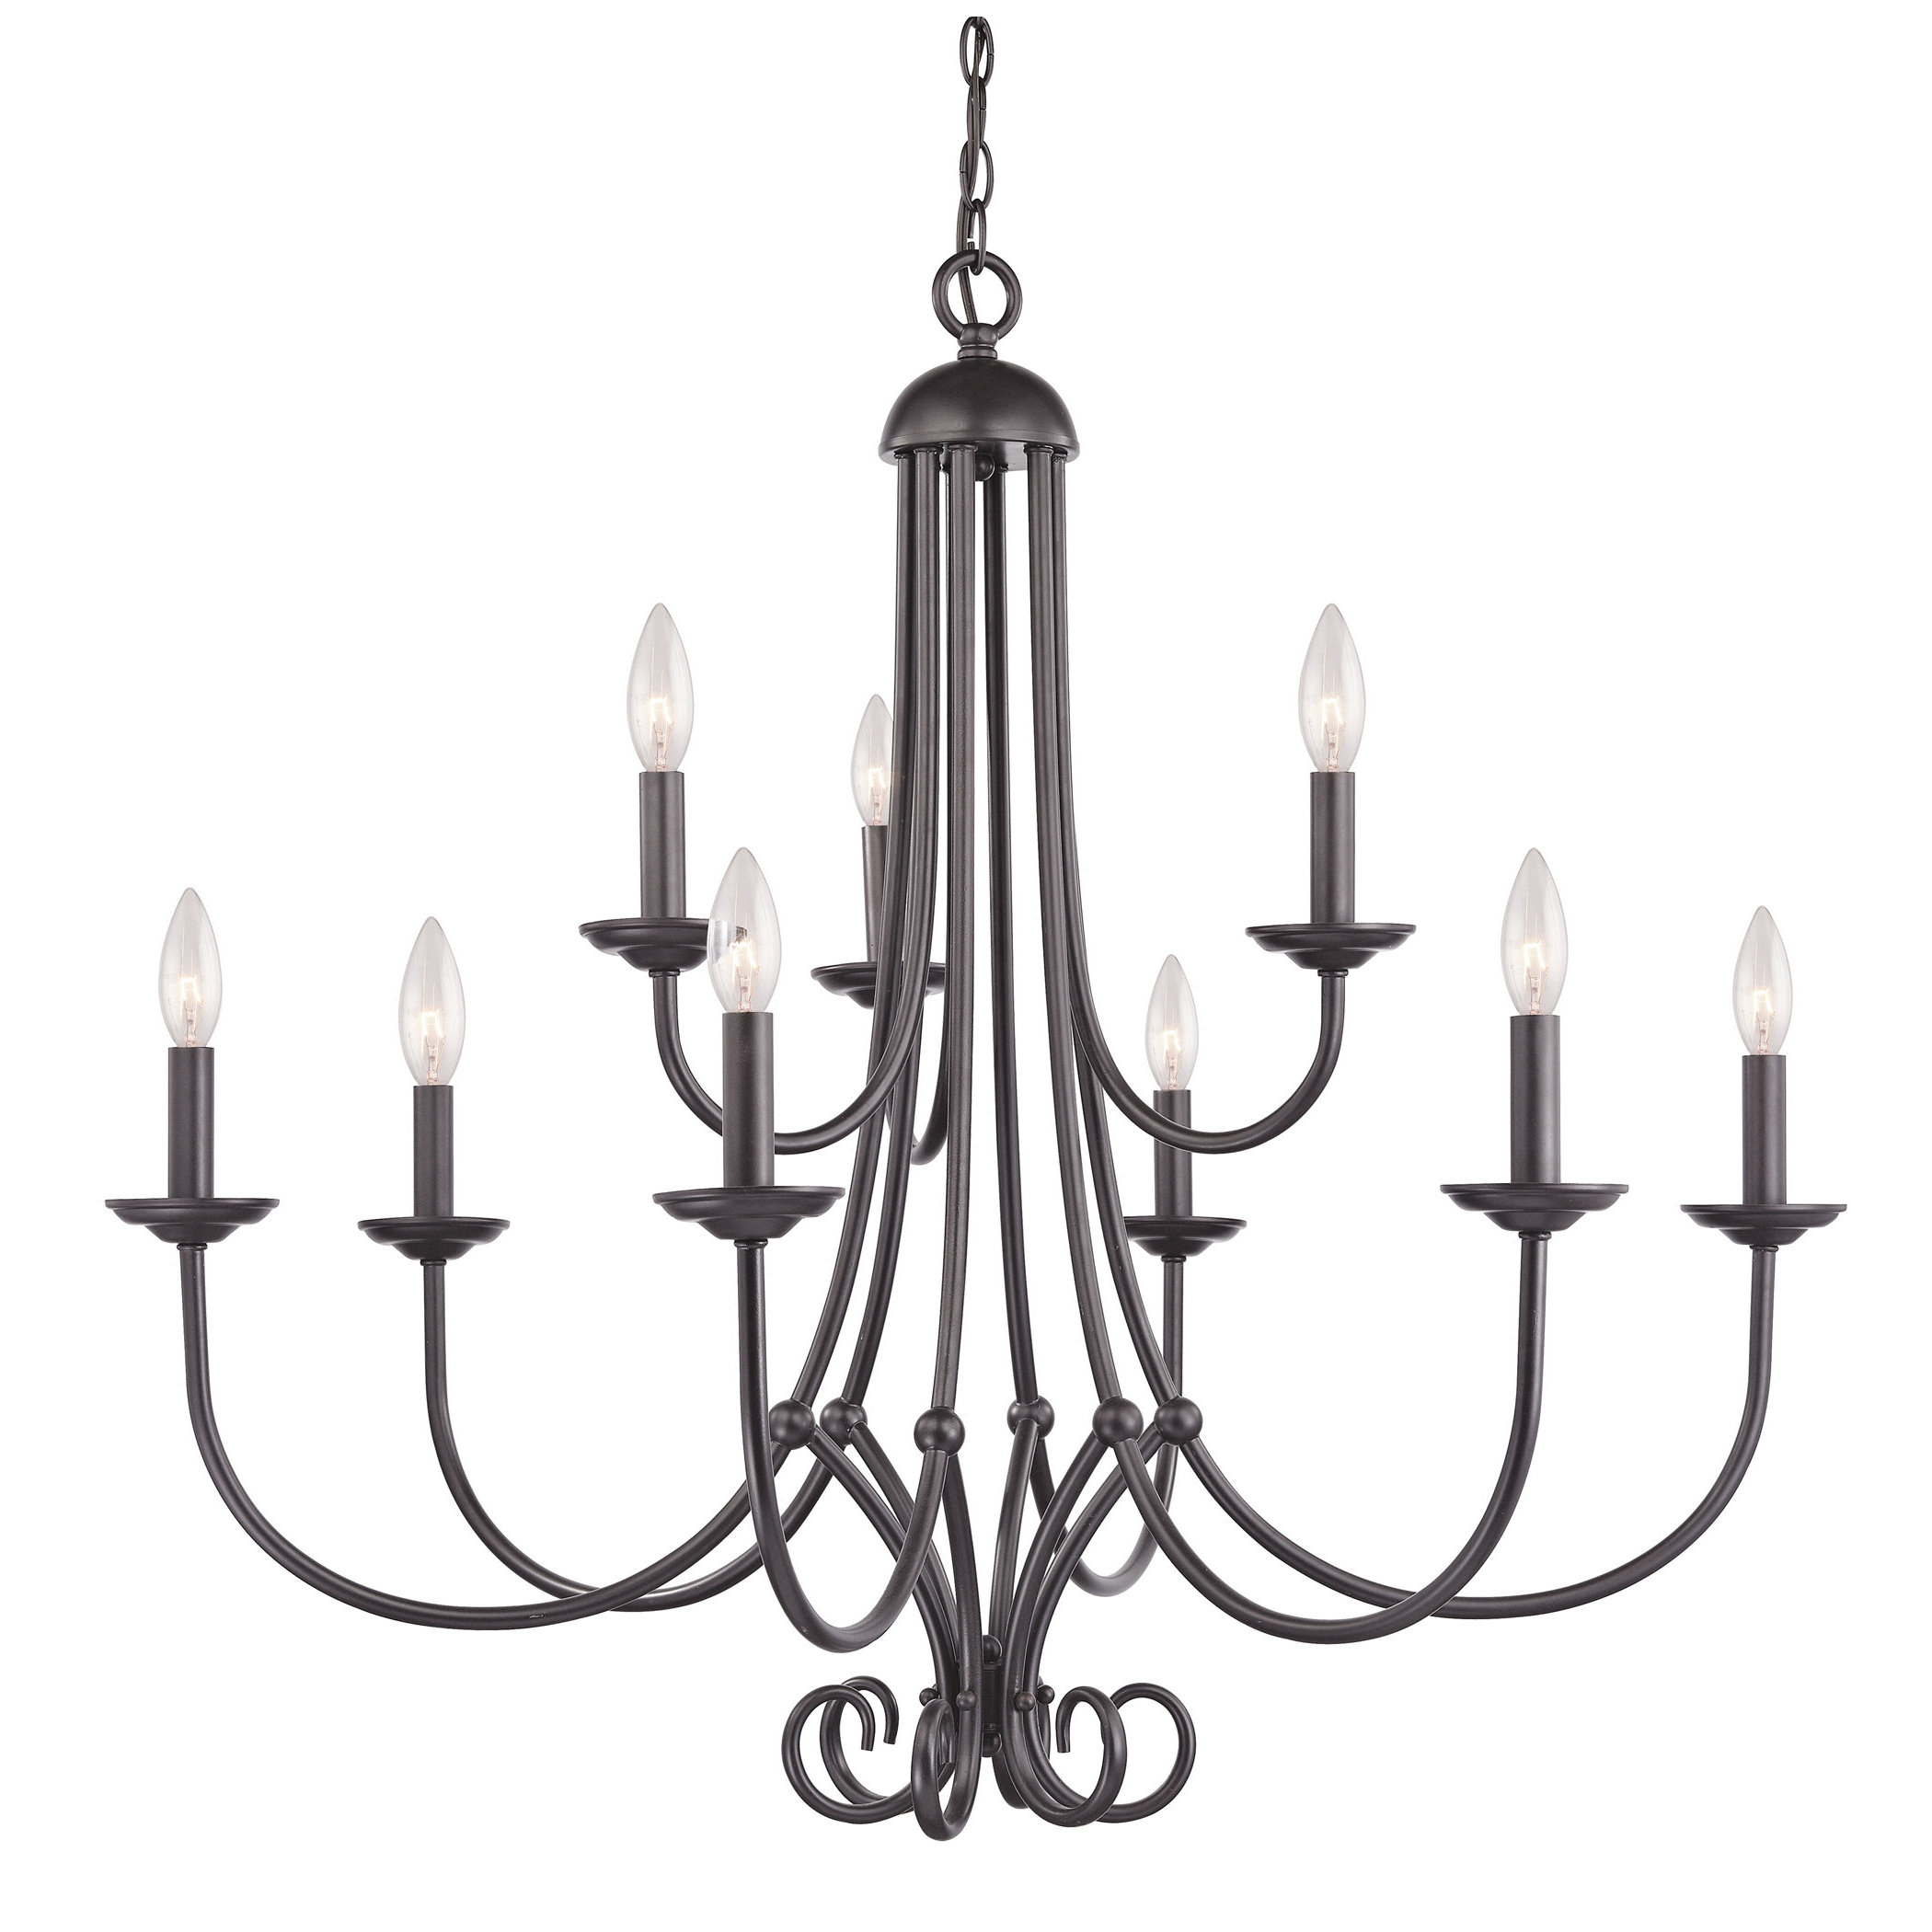 Gaines 9 Light Candle Style Chandeliers Intended For 2019 Holloway 9 Light Chandelier (Gallery 18 of 20)